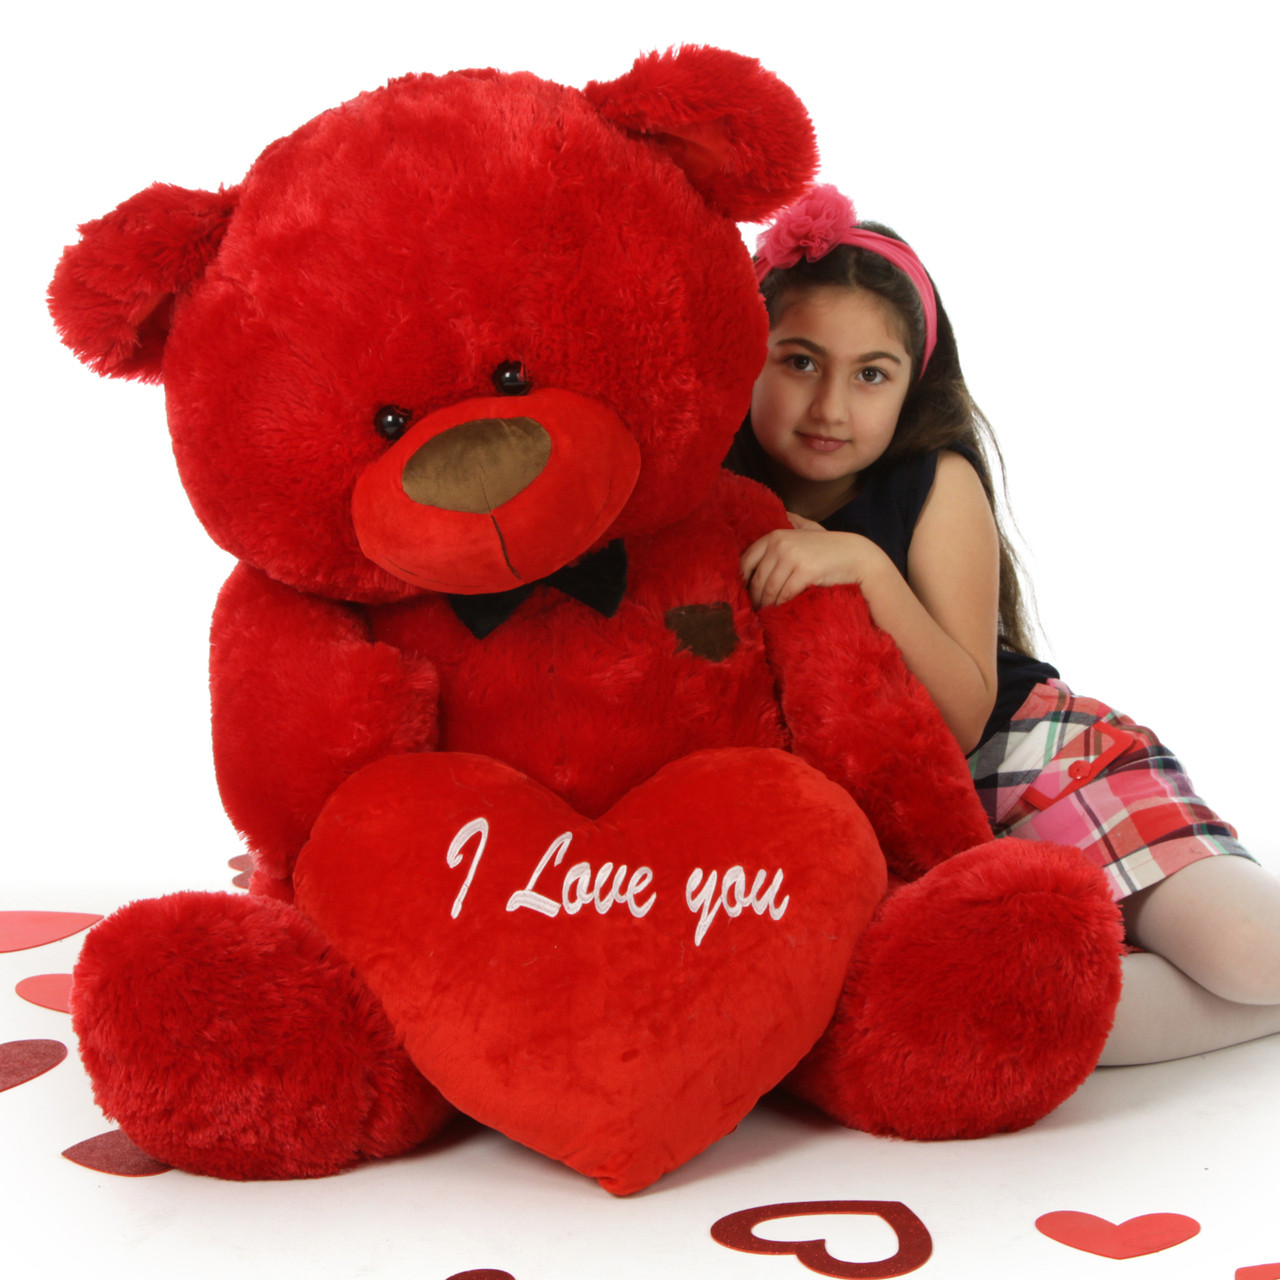 Big Red Valentine S Teddy Bear With Bow Tie And Plush I Love You